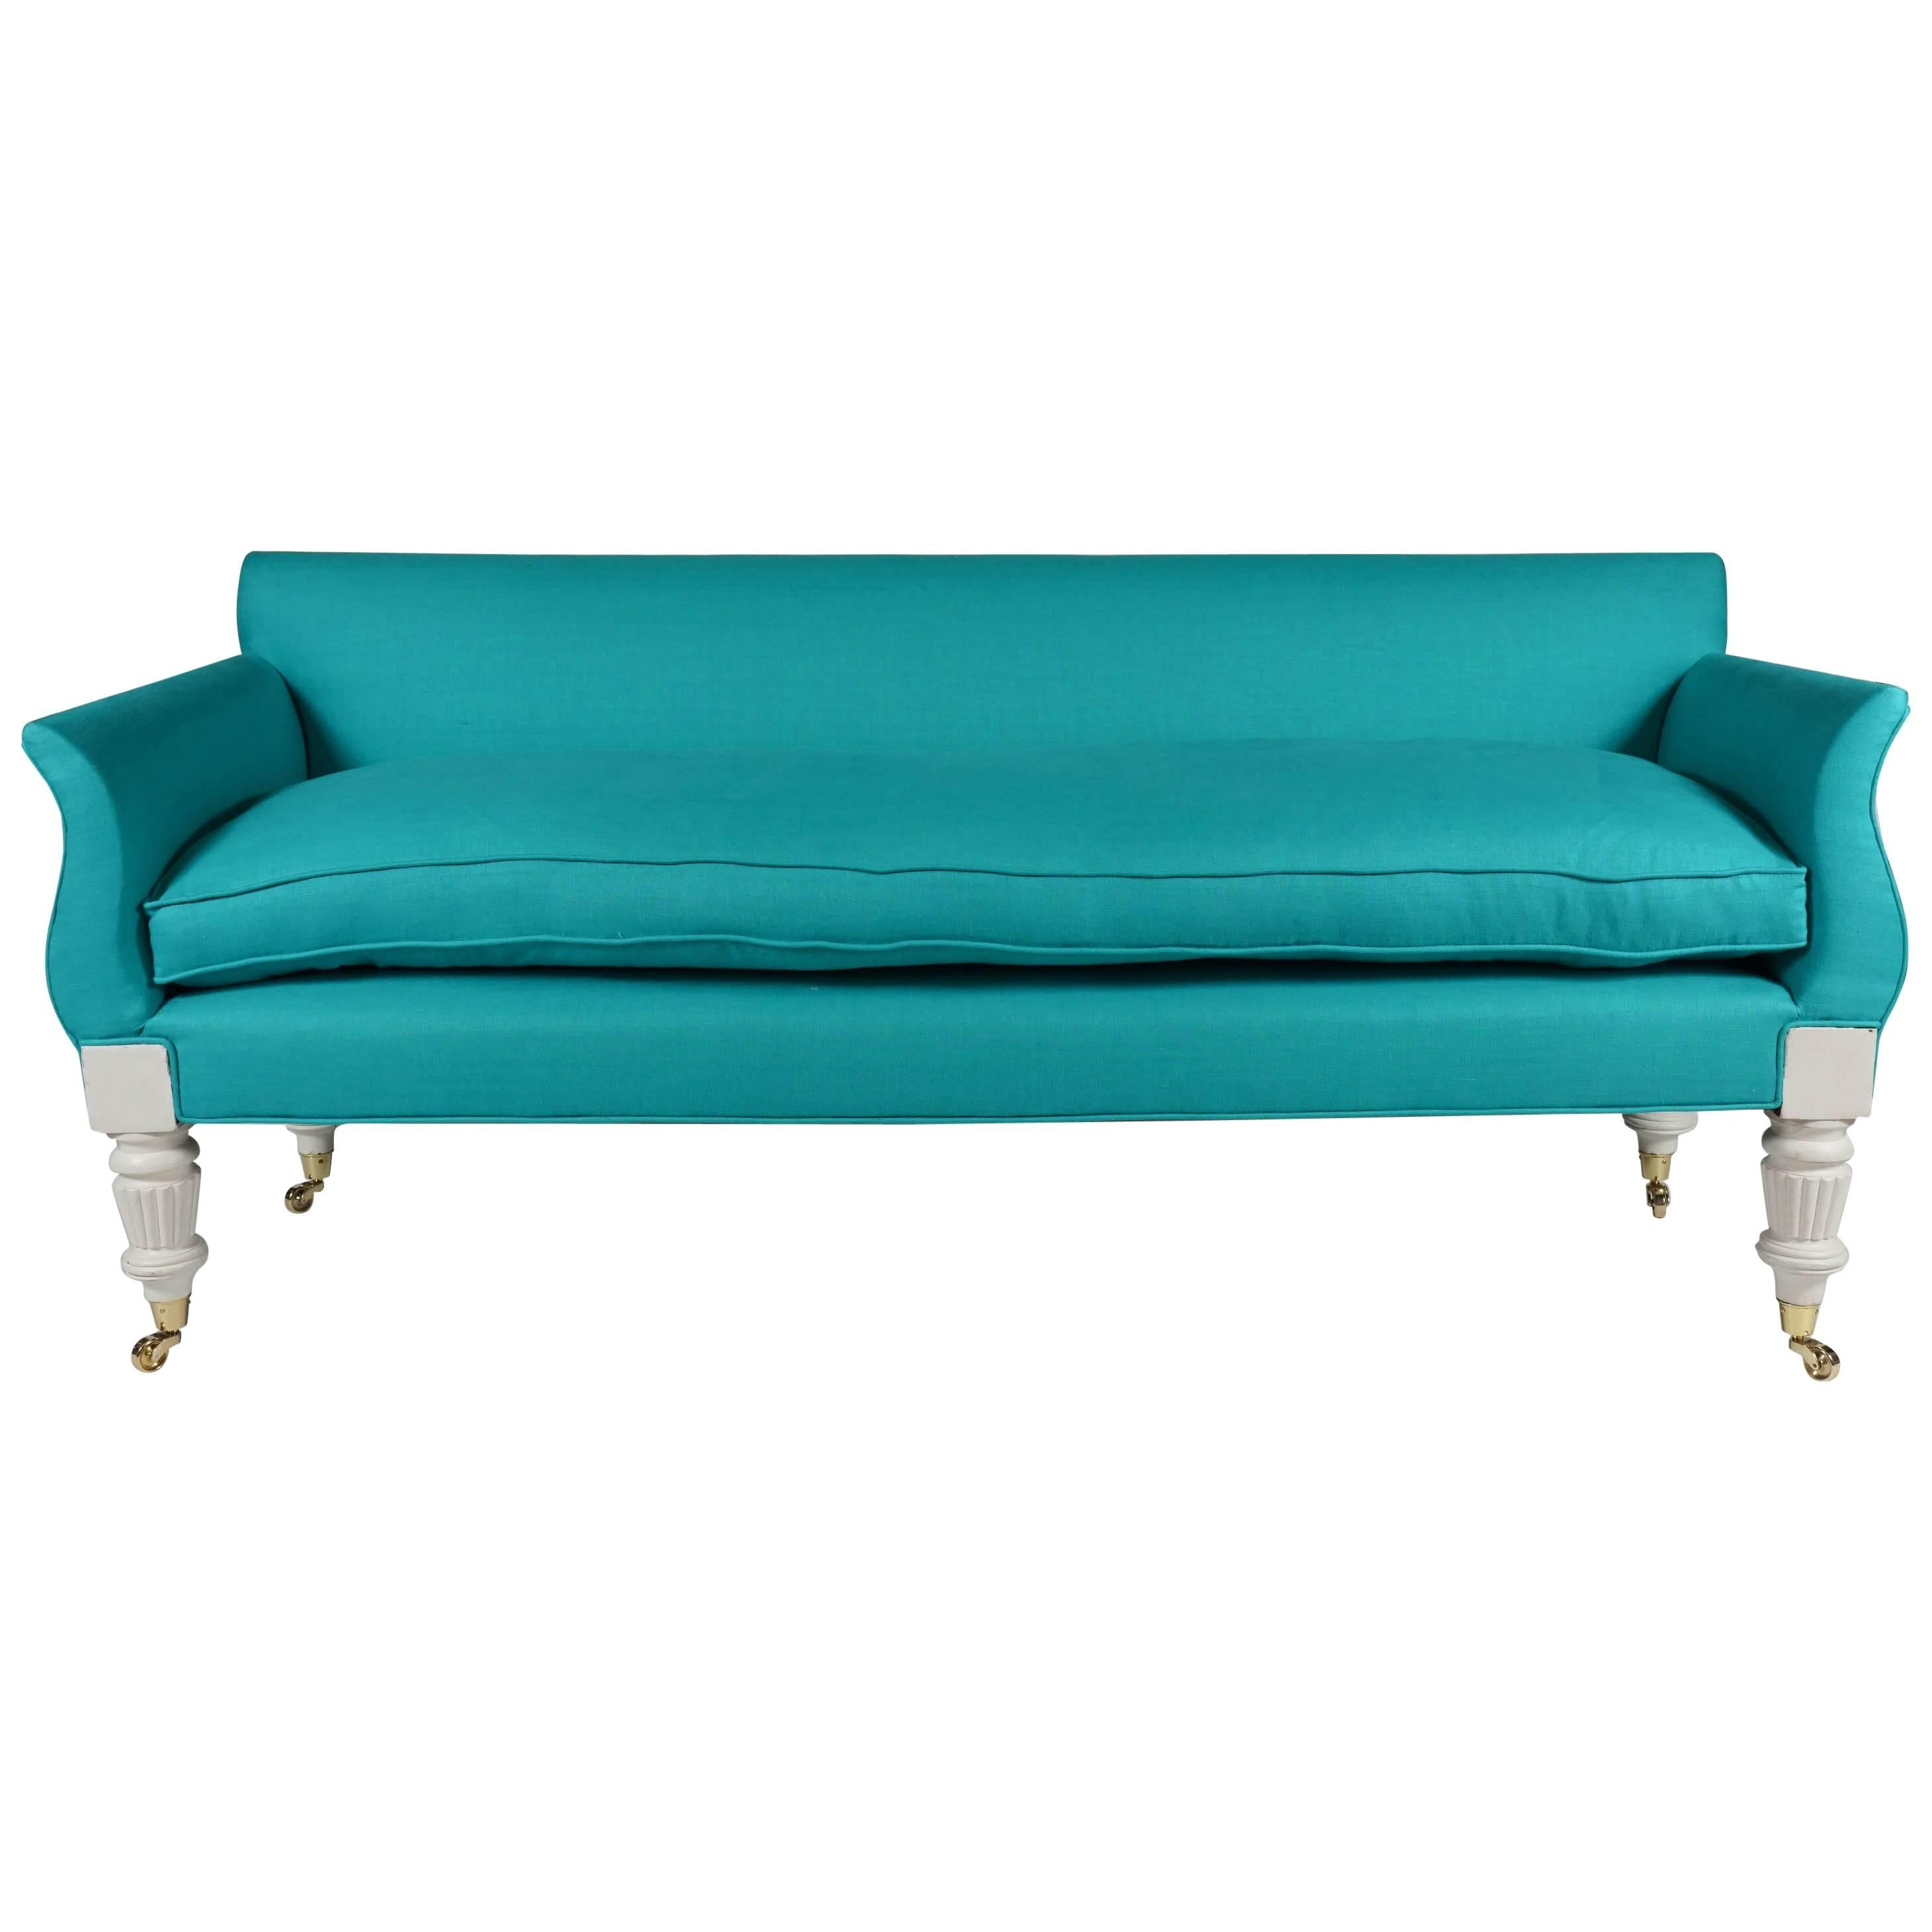 Regency Painted and Upholstered Hall Sofa or Settee, circa 1835